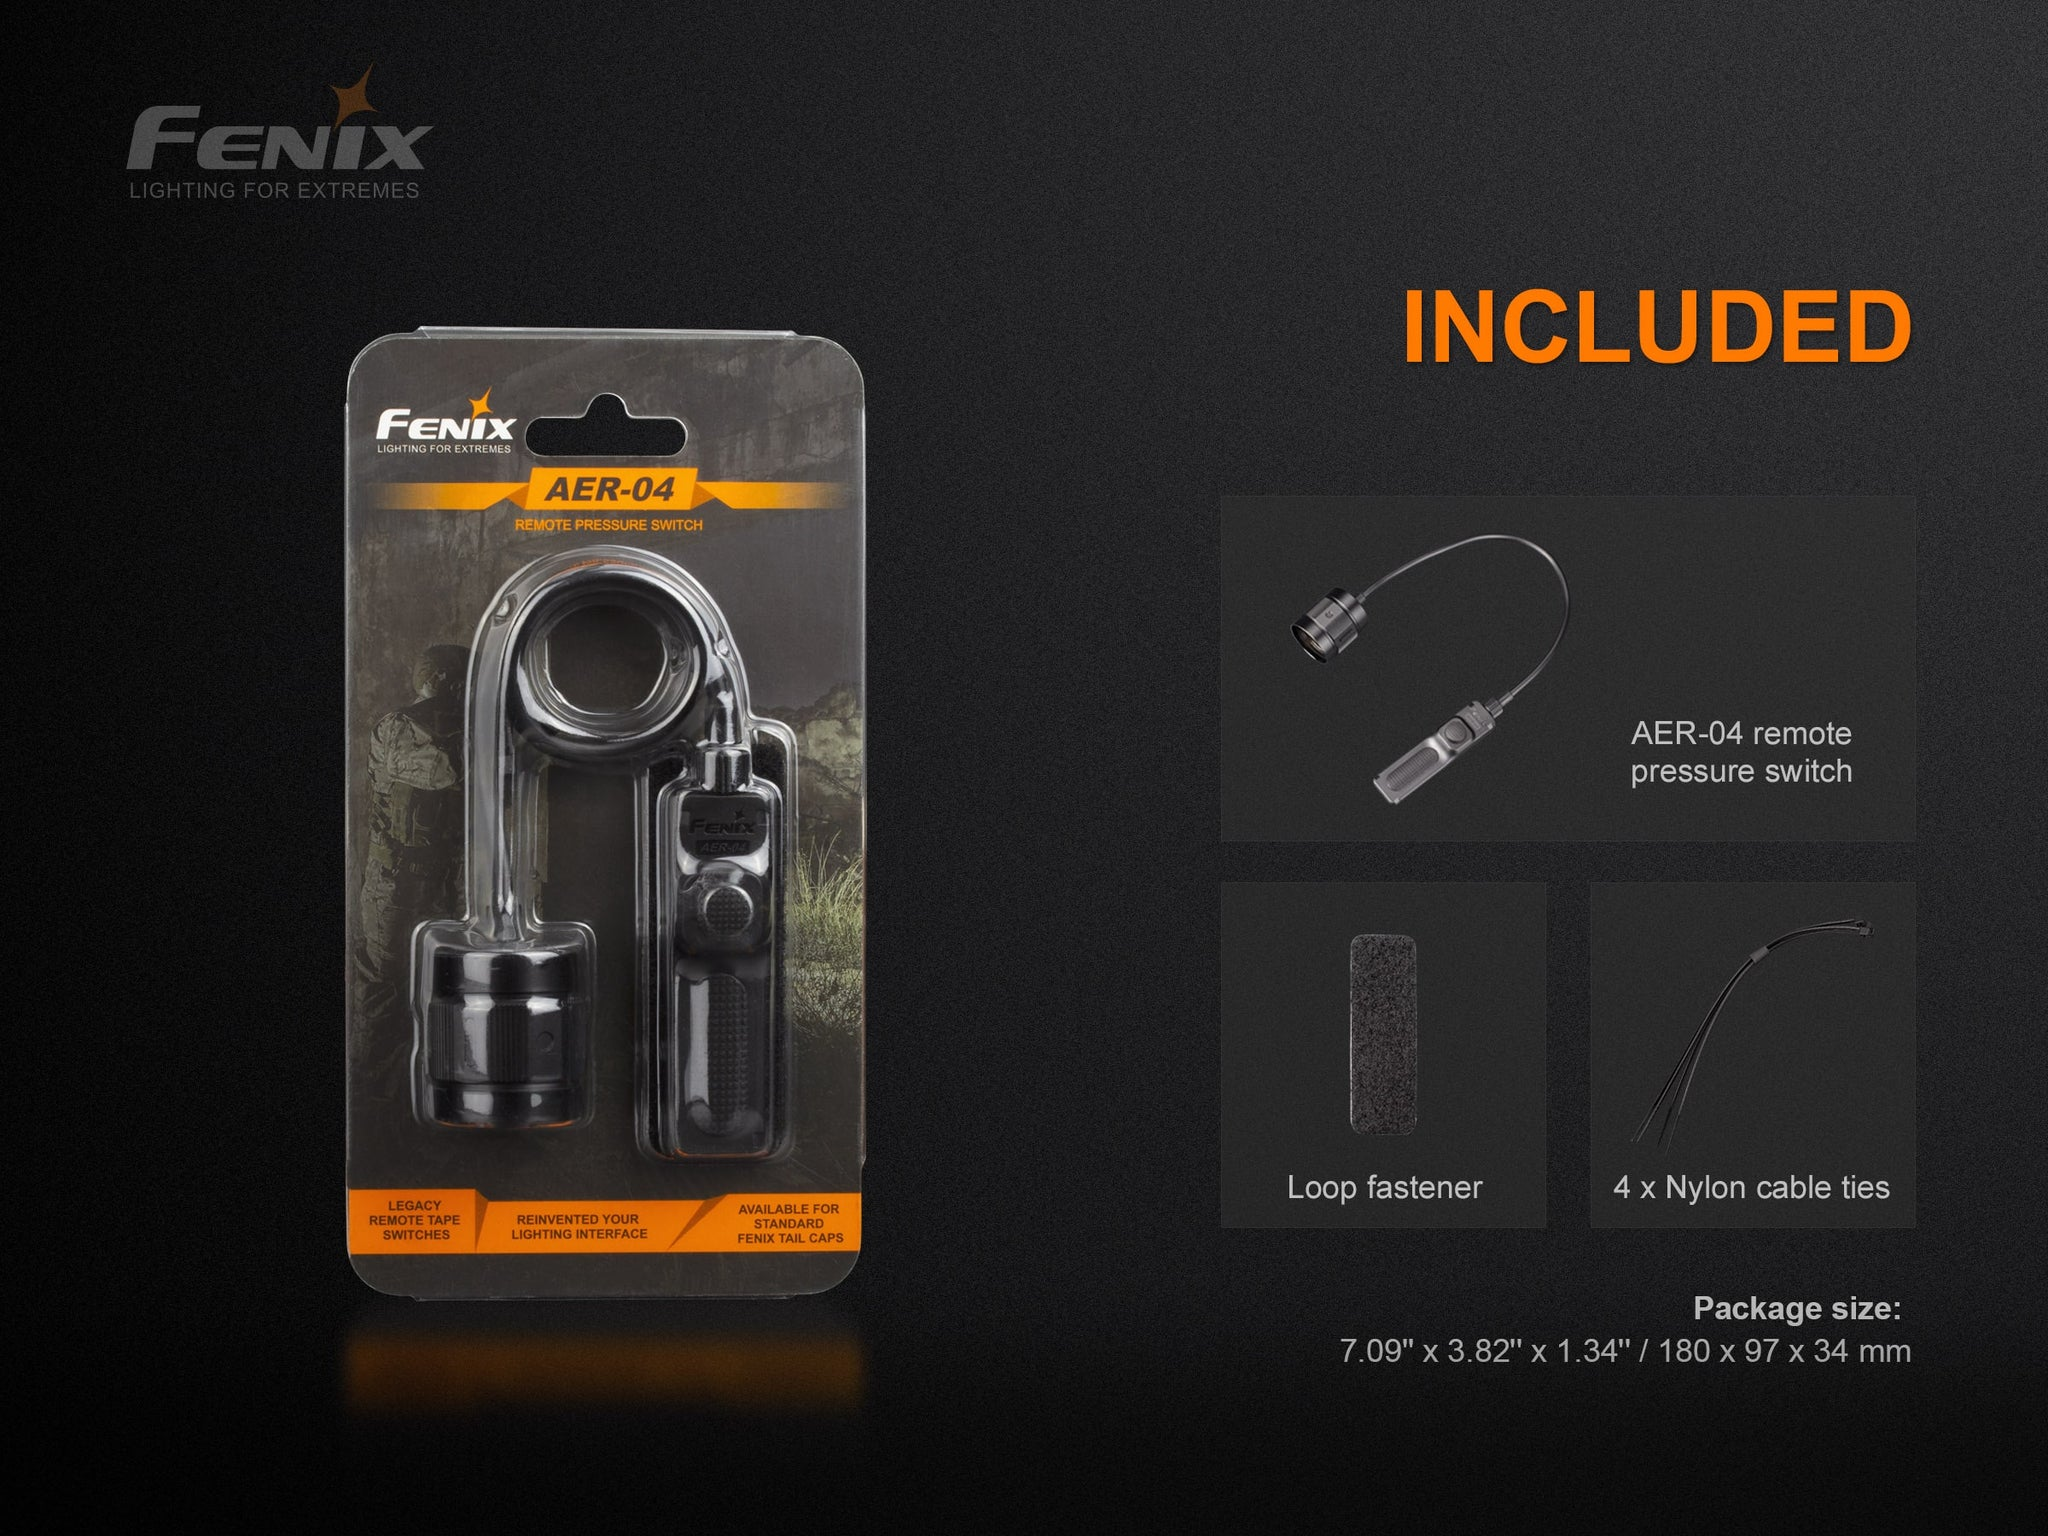 Fenix AER 04 Tactical Remote Pressure Switch in India Accessory For Rail Mounted Torchlight